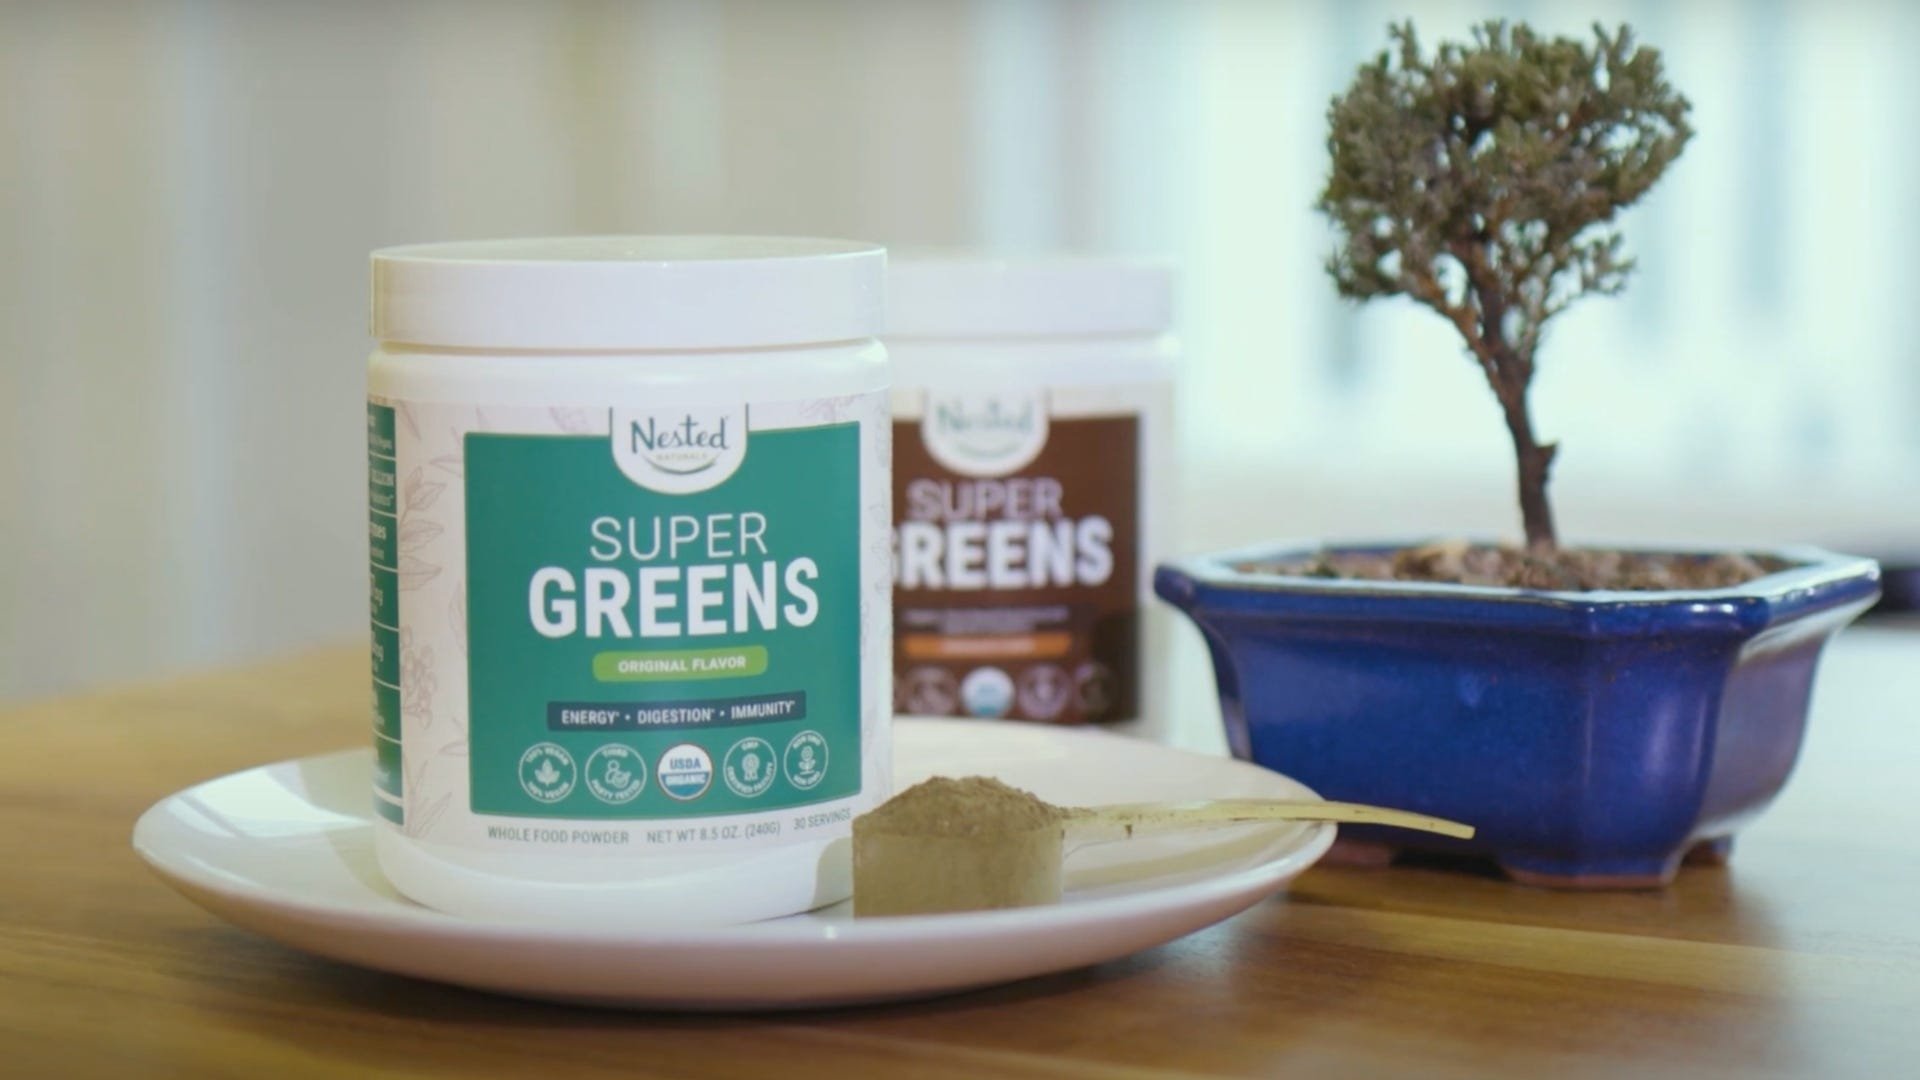 Two bottles of Nested Naturals Super Greens powder on a table.